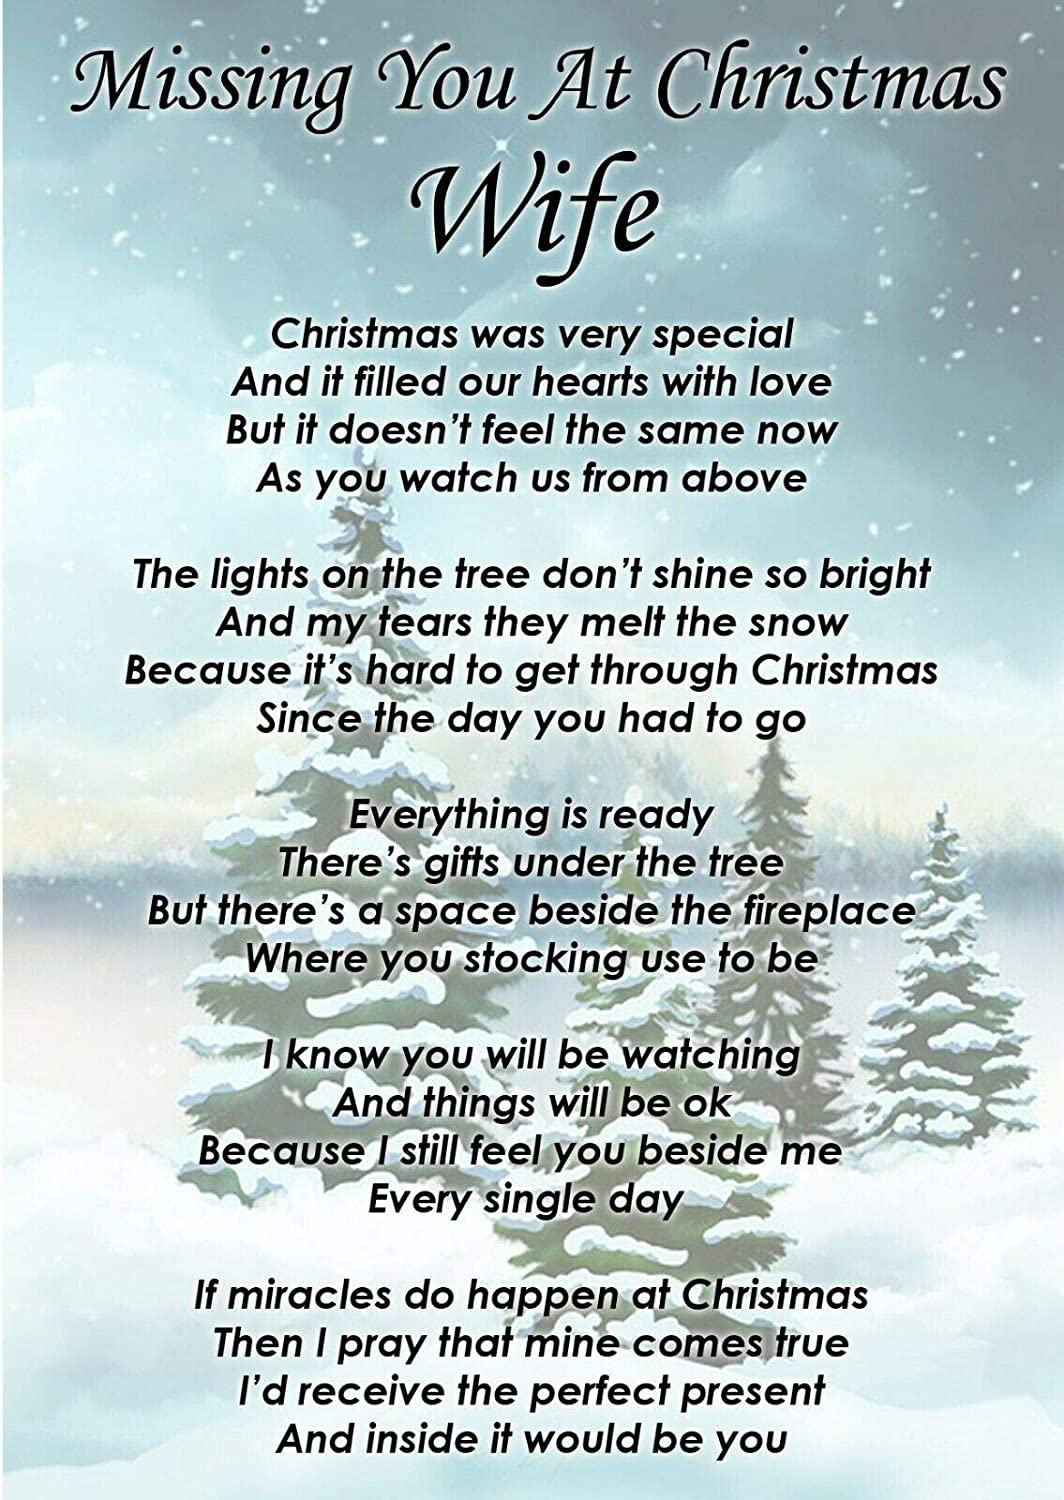 Lisas Gifts Missing You at Christmas Wife Memorial Graveside Funeral Poem Keepsake Card Includes Free Ground Stake F377